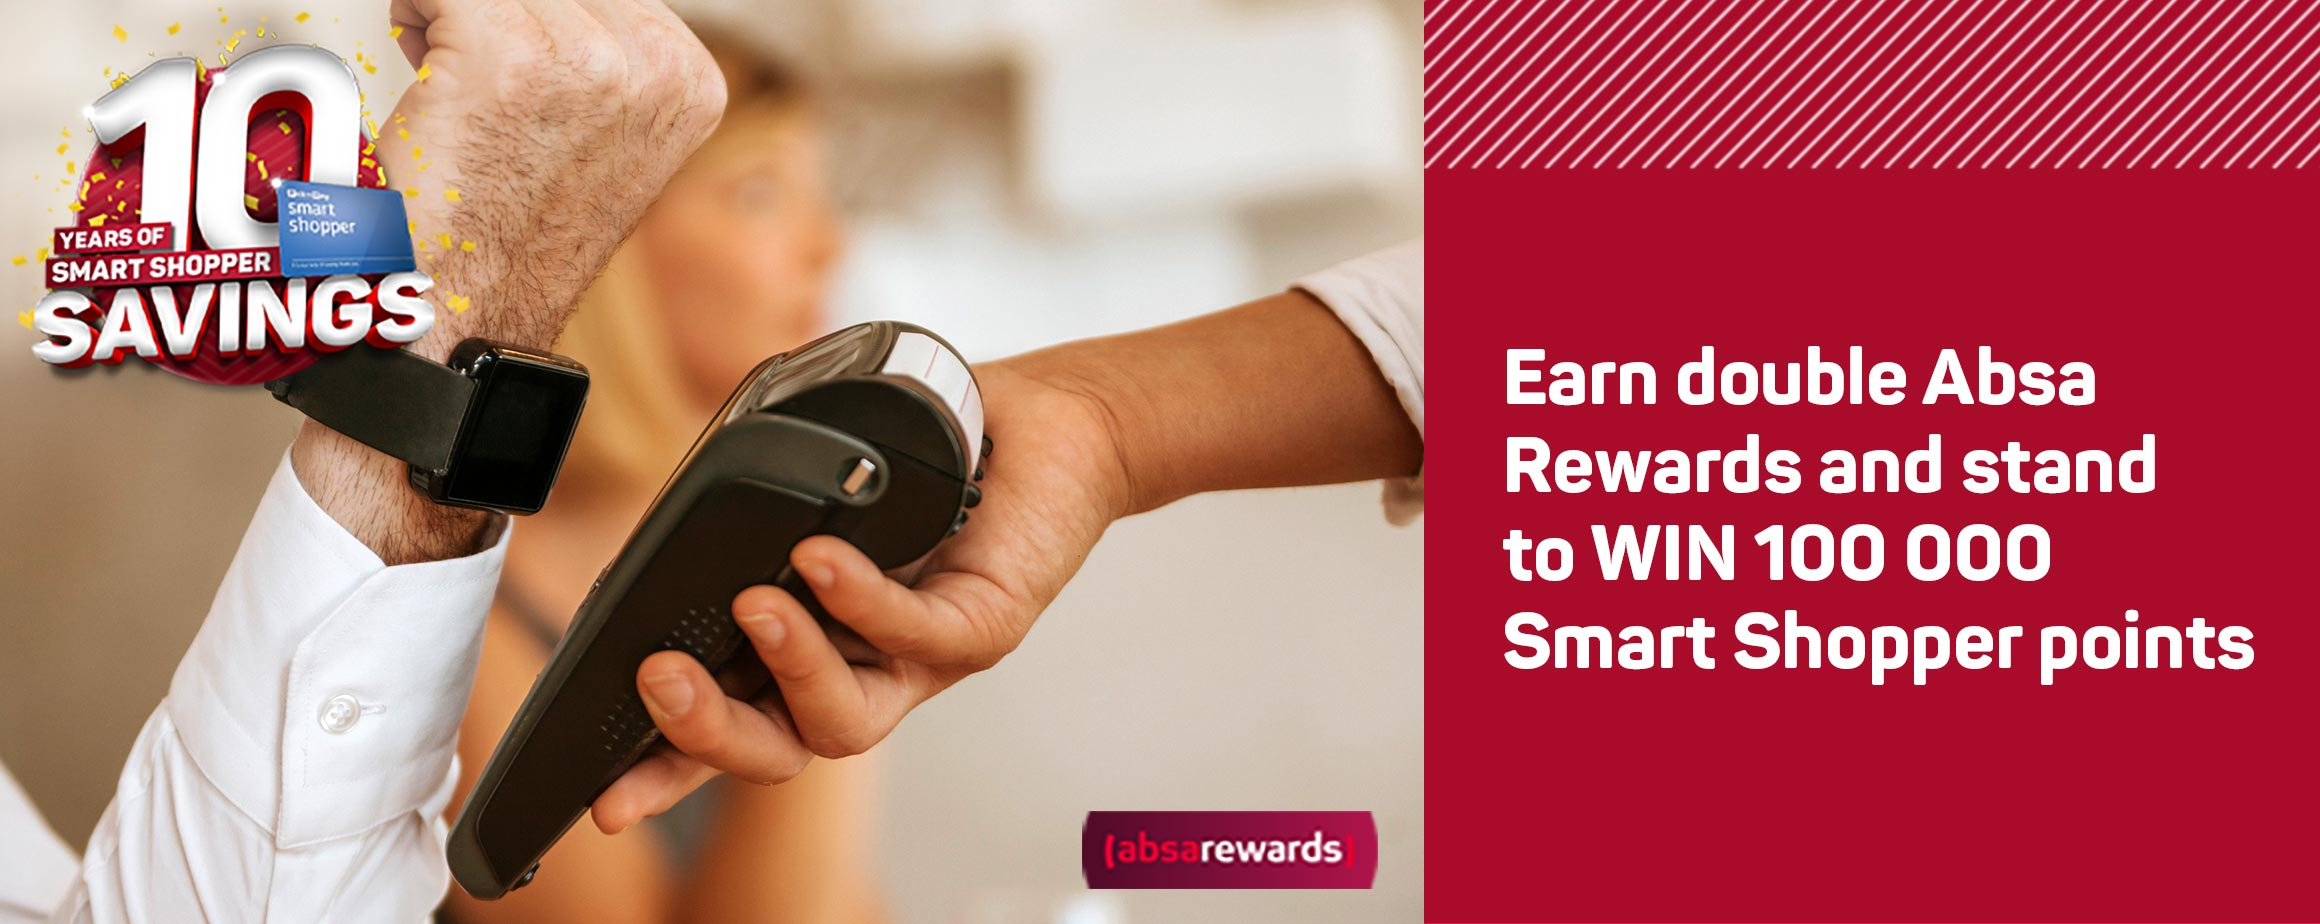 Earn double absa rewards and stand to win 100 000 Smart Shopper points